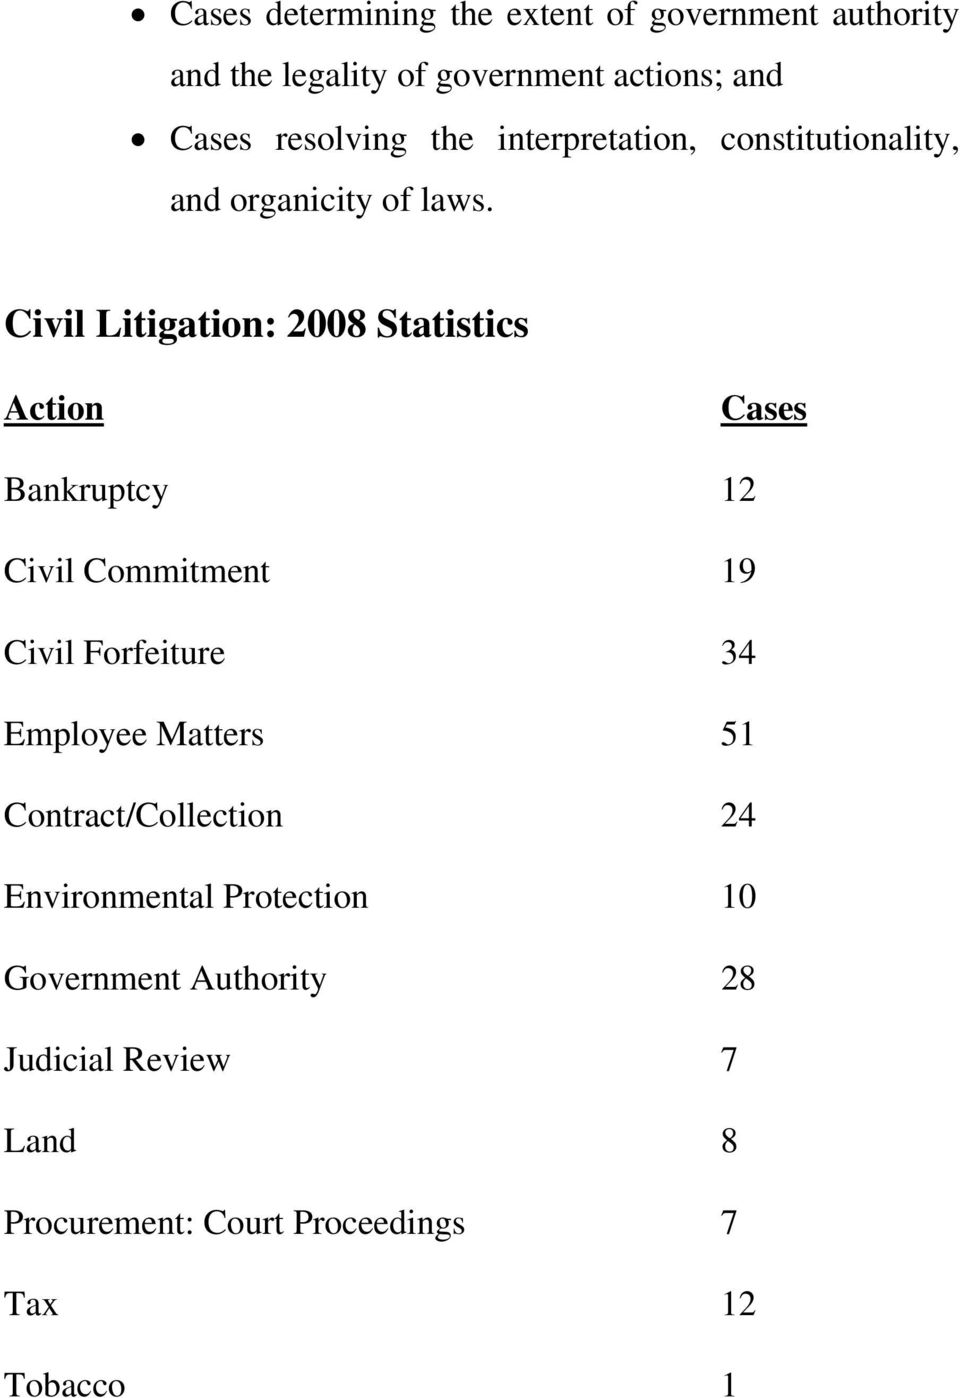 Civil Litigation: 2008 Statistics Action Cases Bankruptcy 12 Civil Commitment 19 Civil Forfeiture 34 Employee